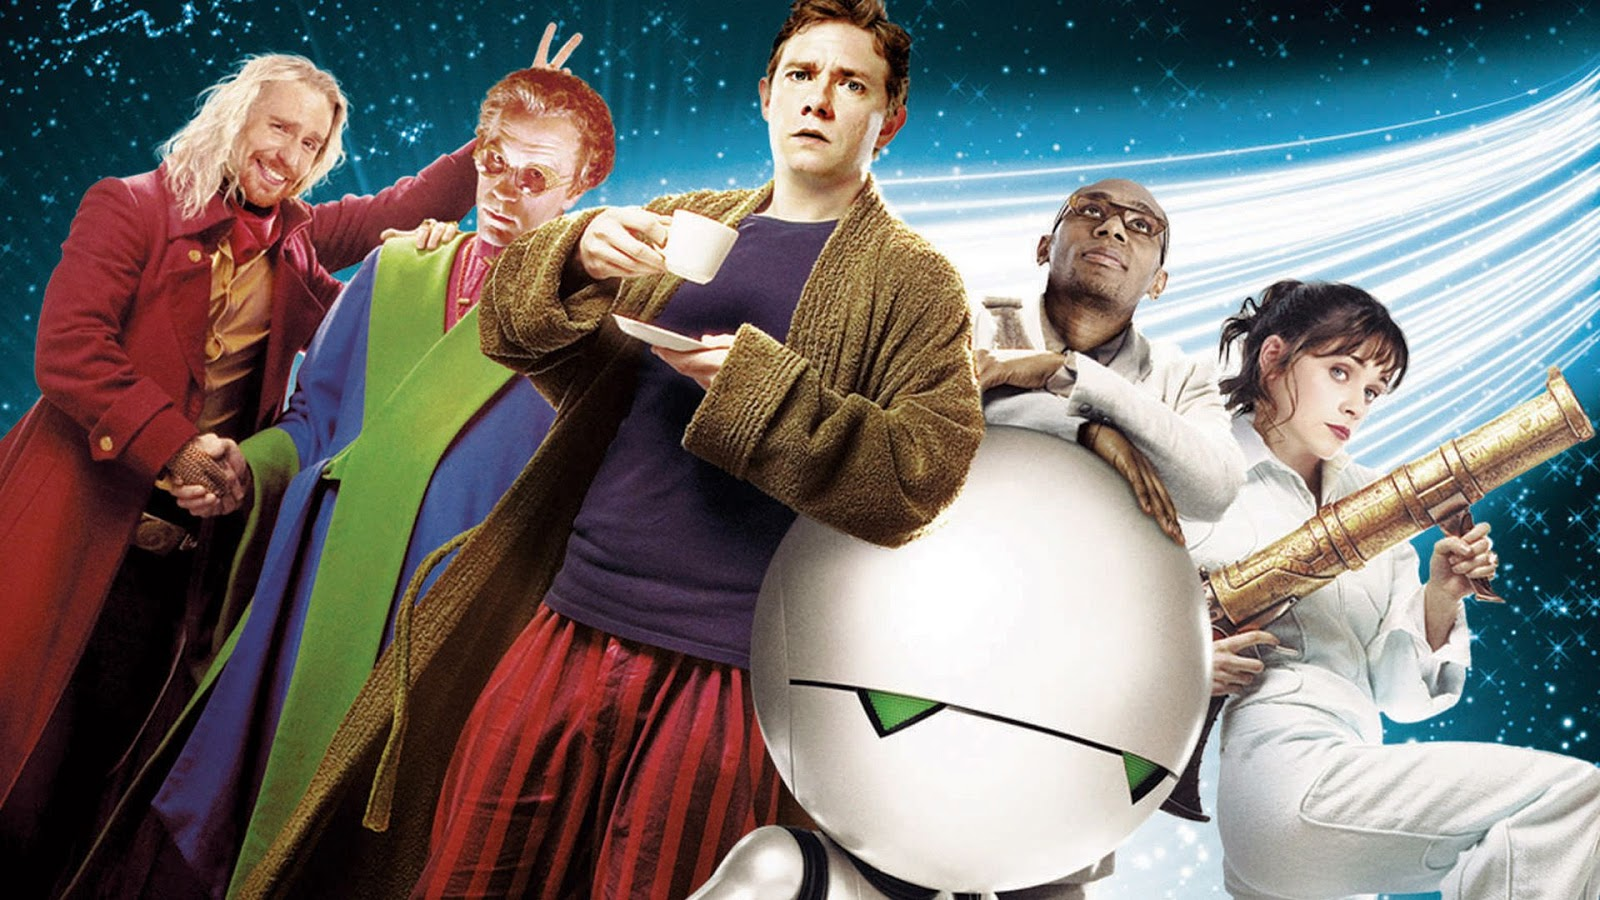 hitchhikers guide to the galaxy cast